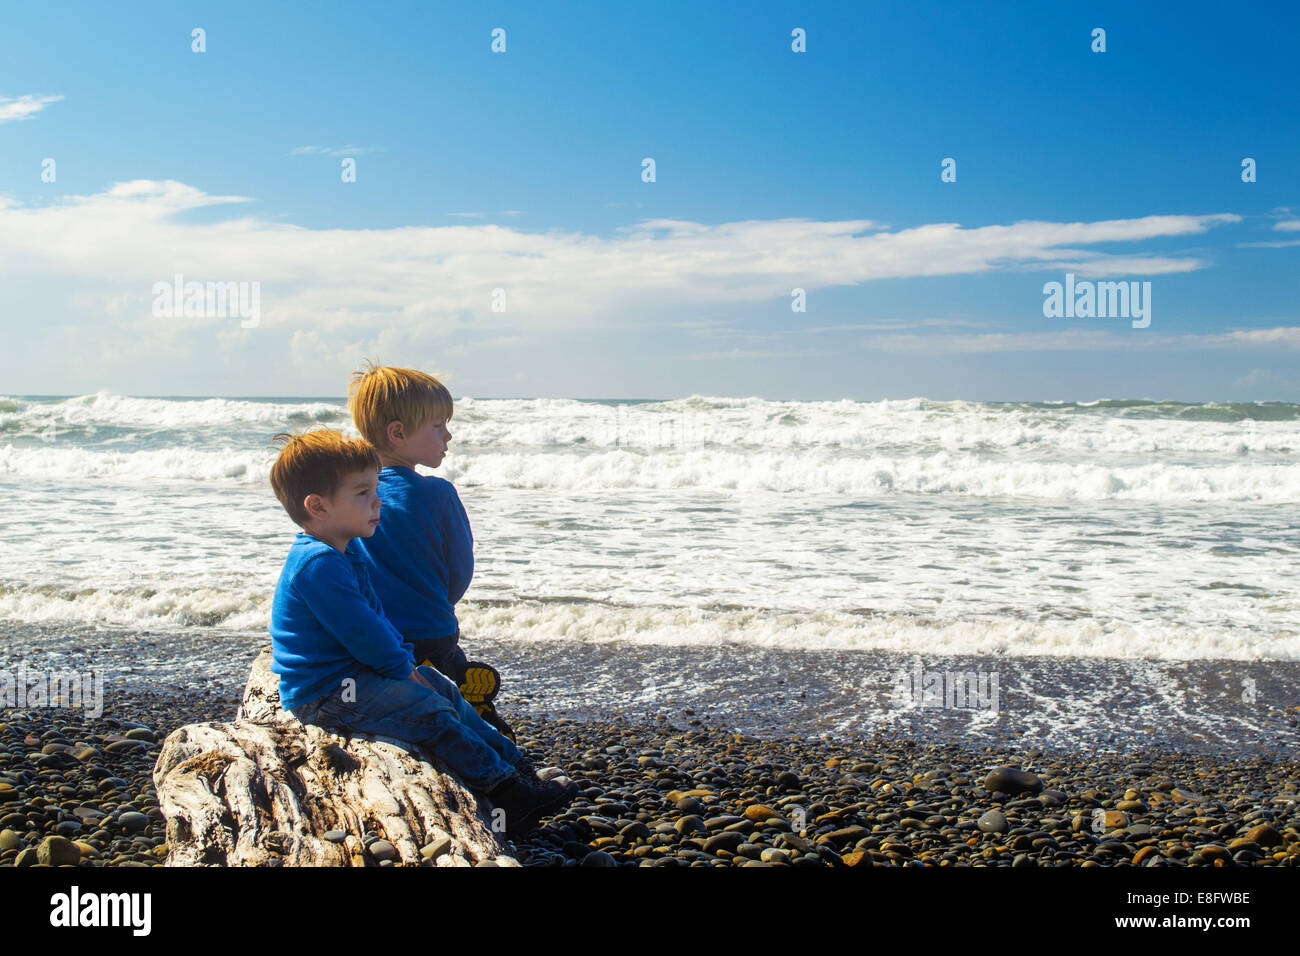 View of boys on beach (2-3 years, 4-5 years) - Stock Image